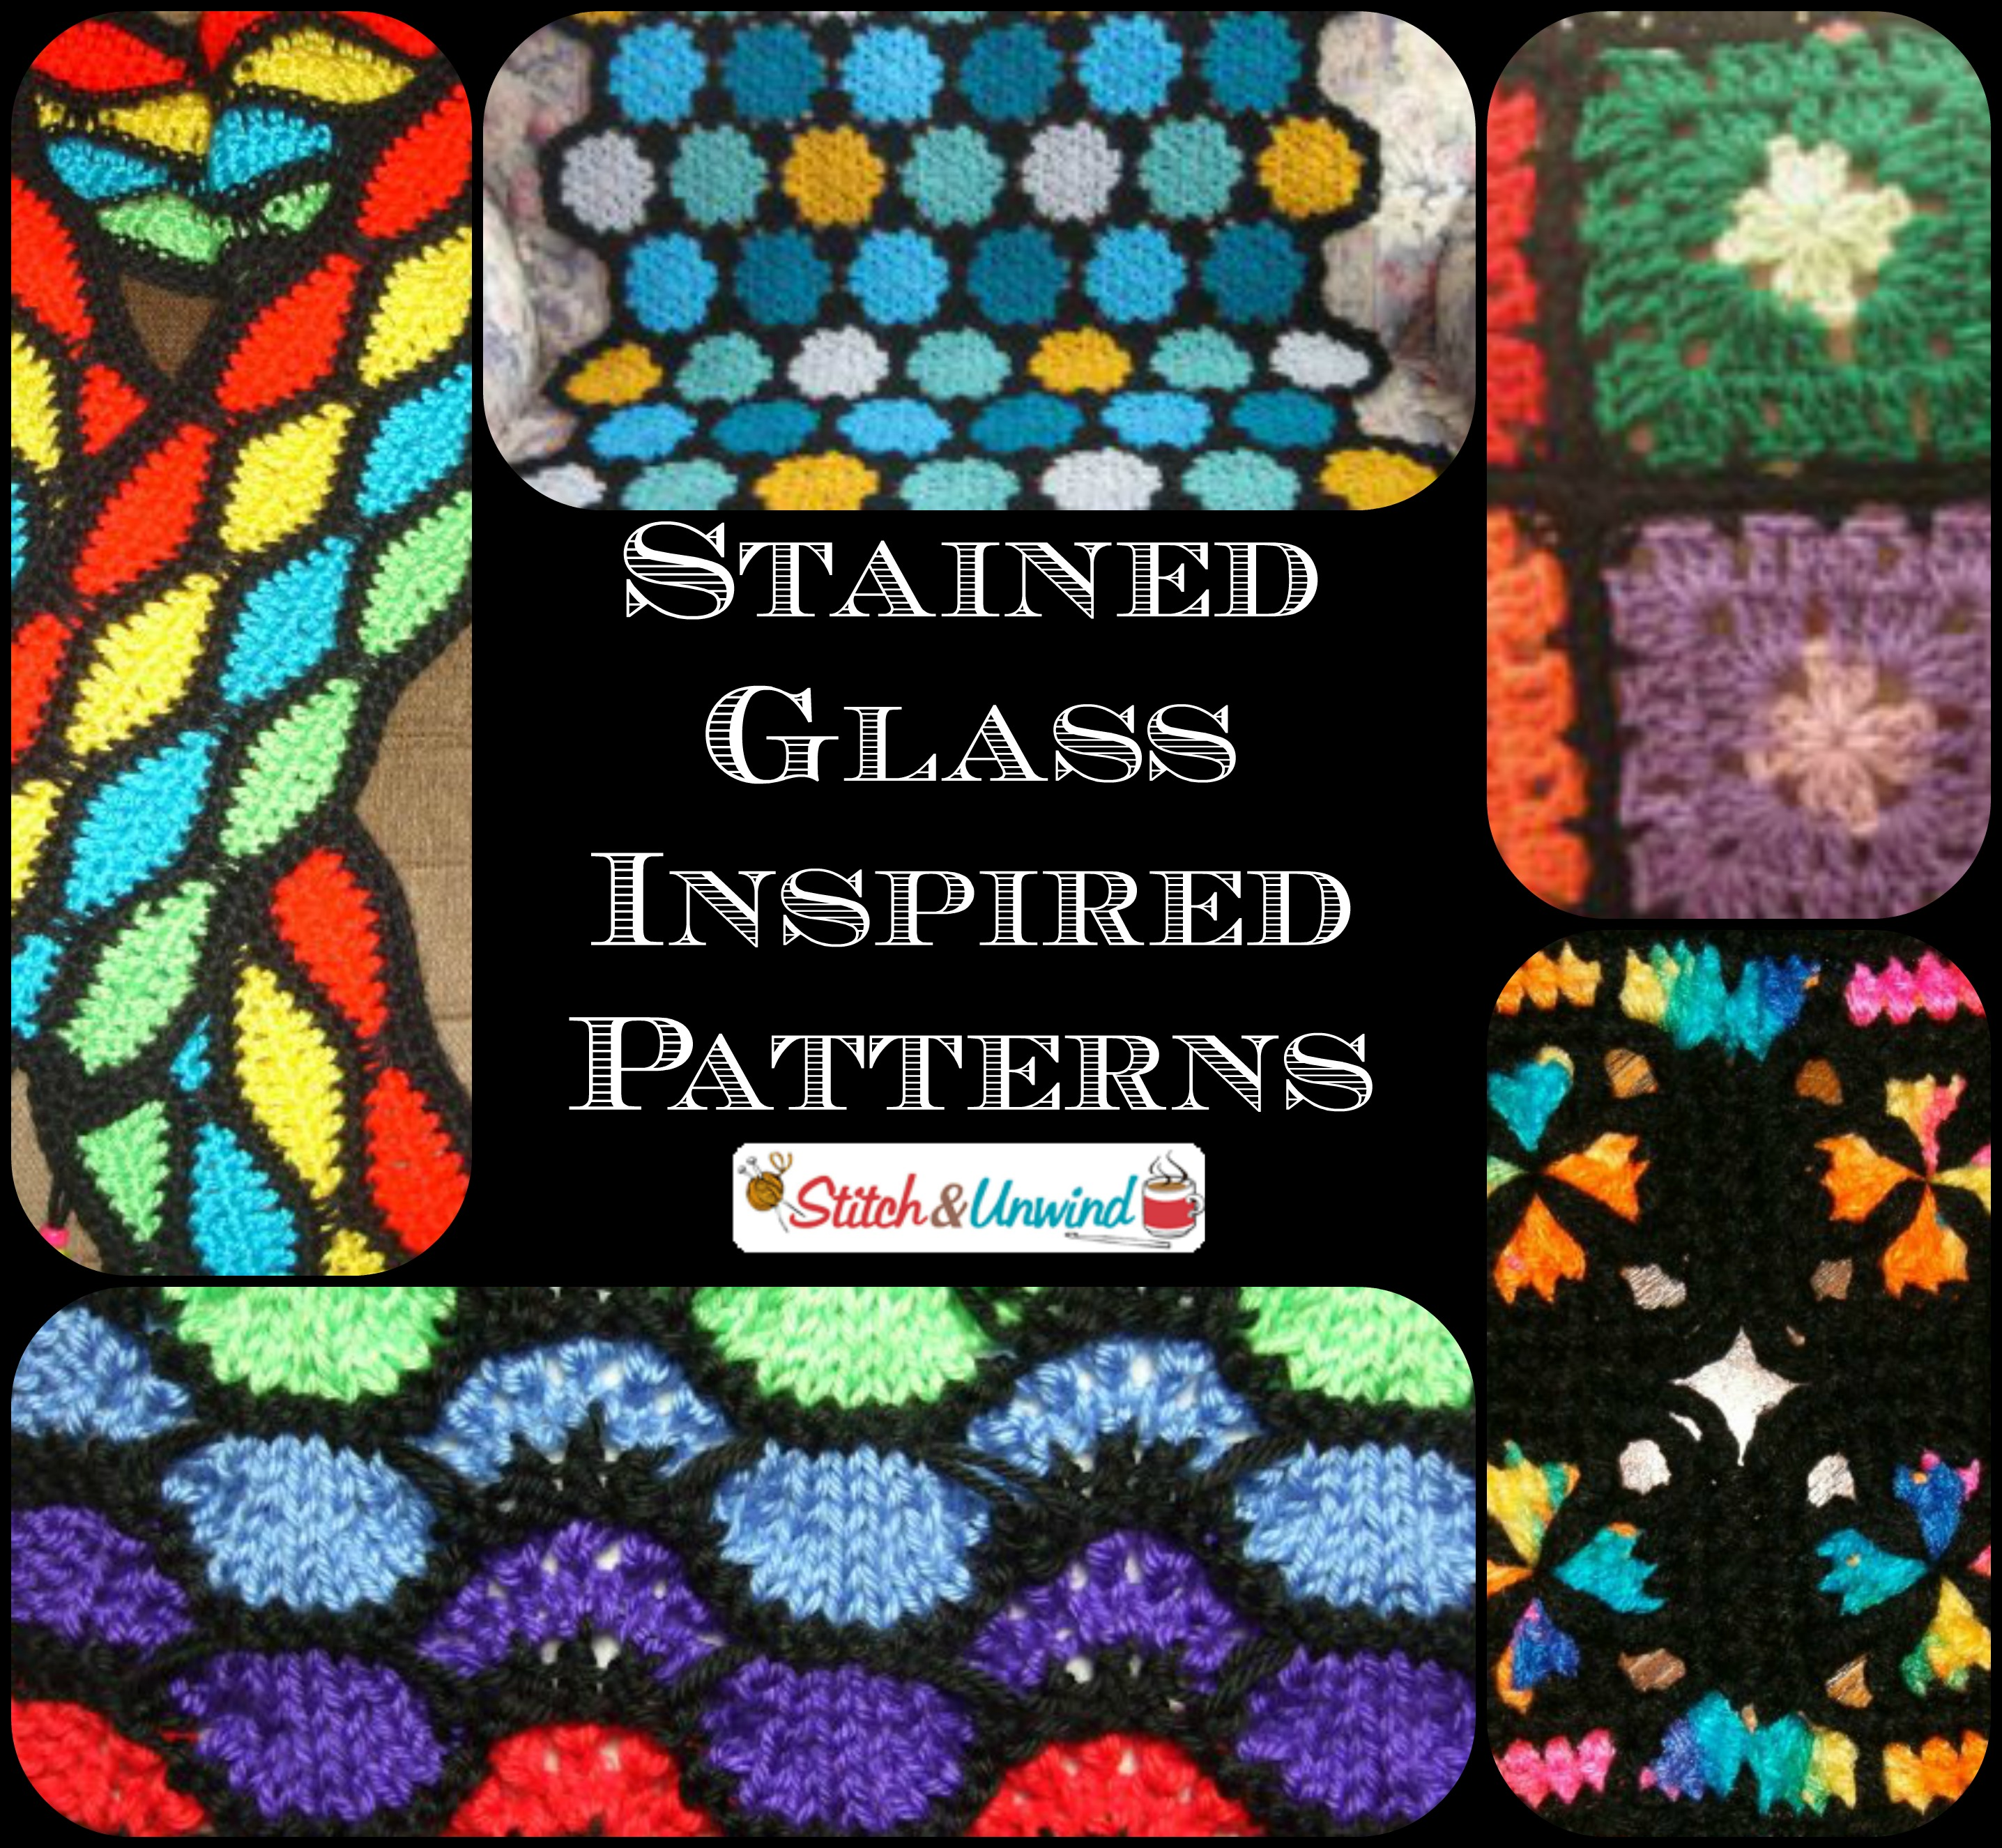 Stained Glass Inspired Patterns - Stitch and Unwind